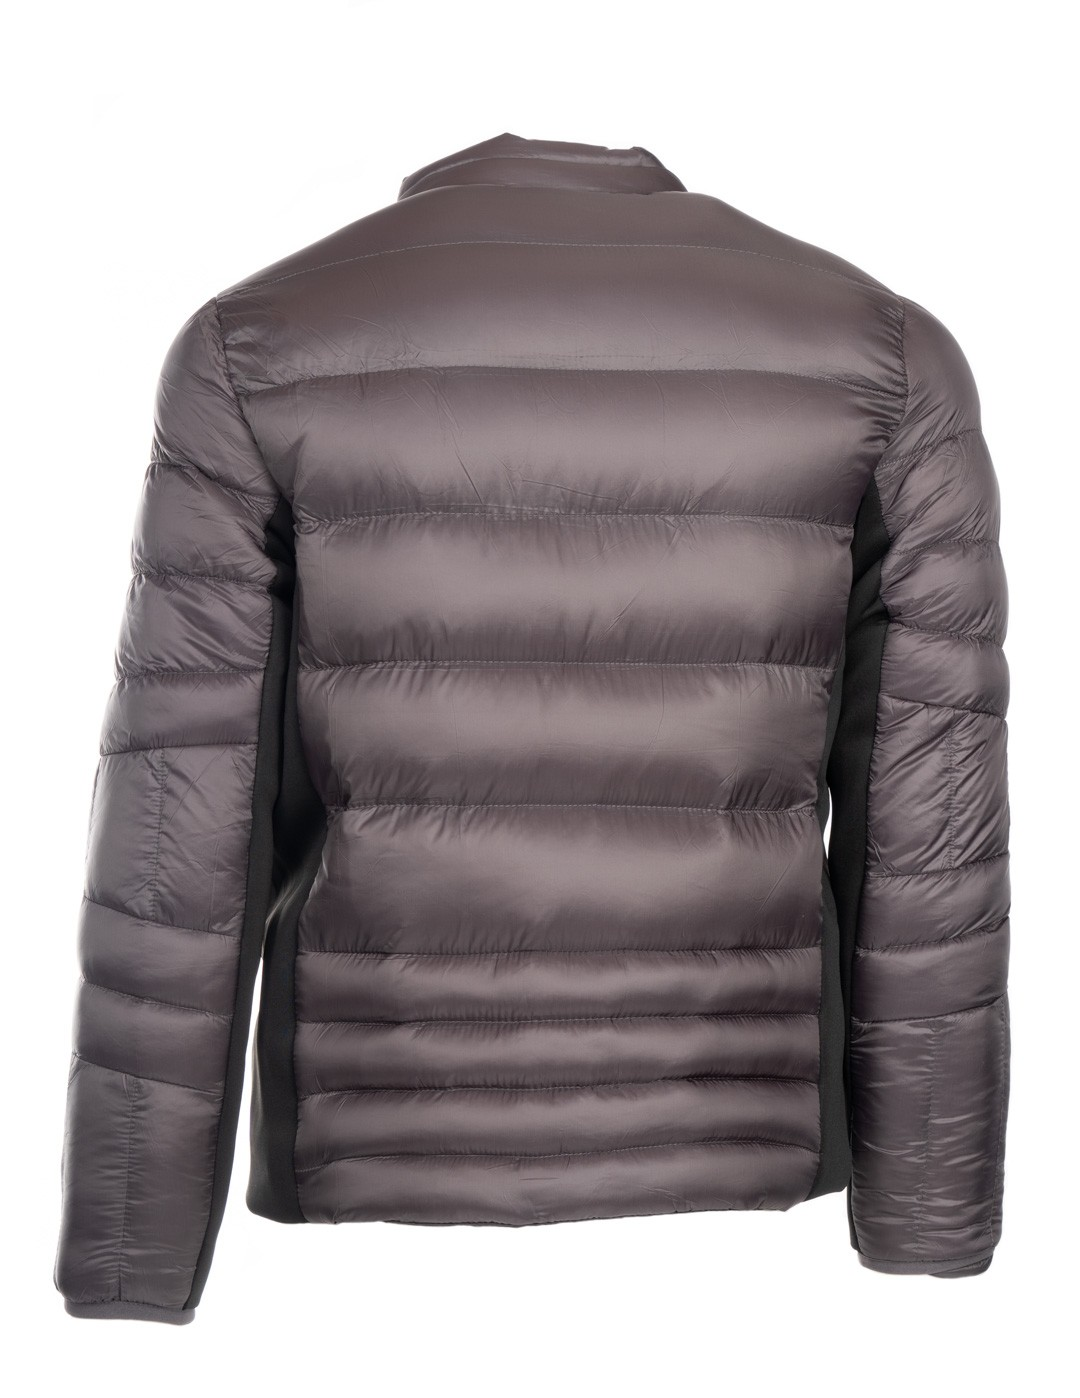 VAL THORENS Jacket Grey